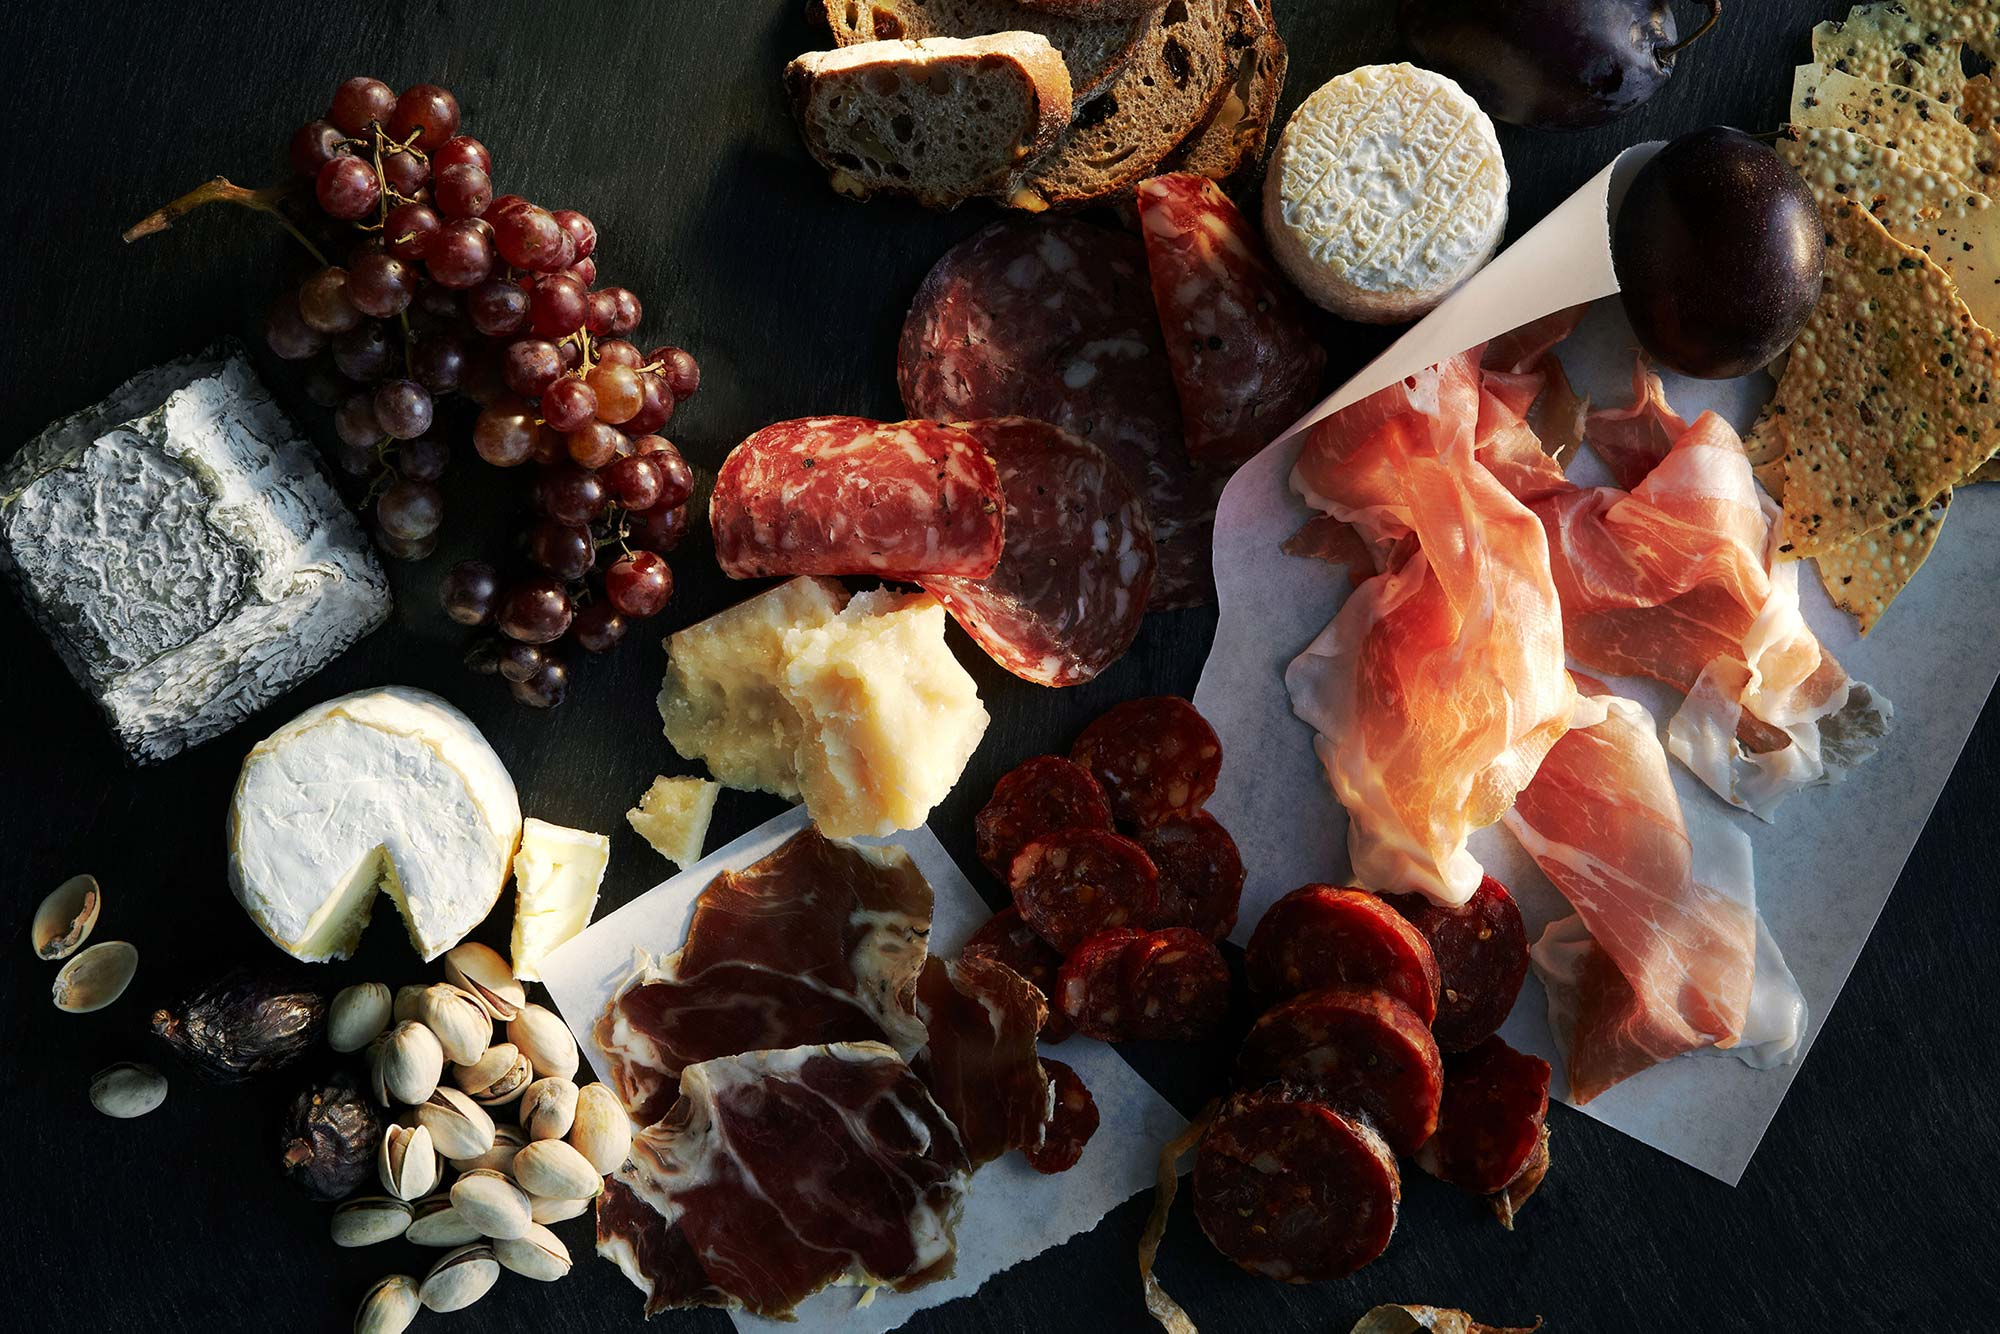 Charcuterie image art direction for Westfield World Trade Center